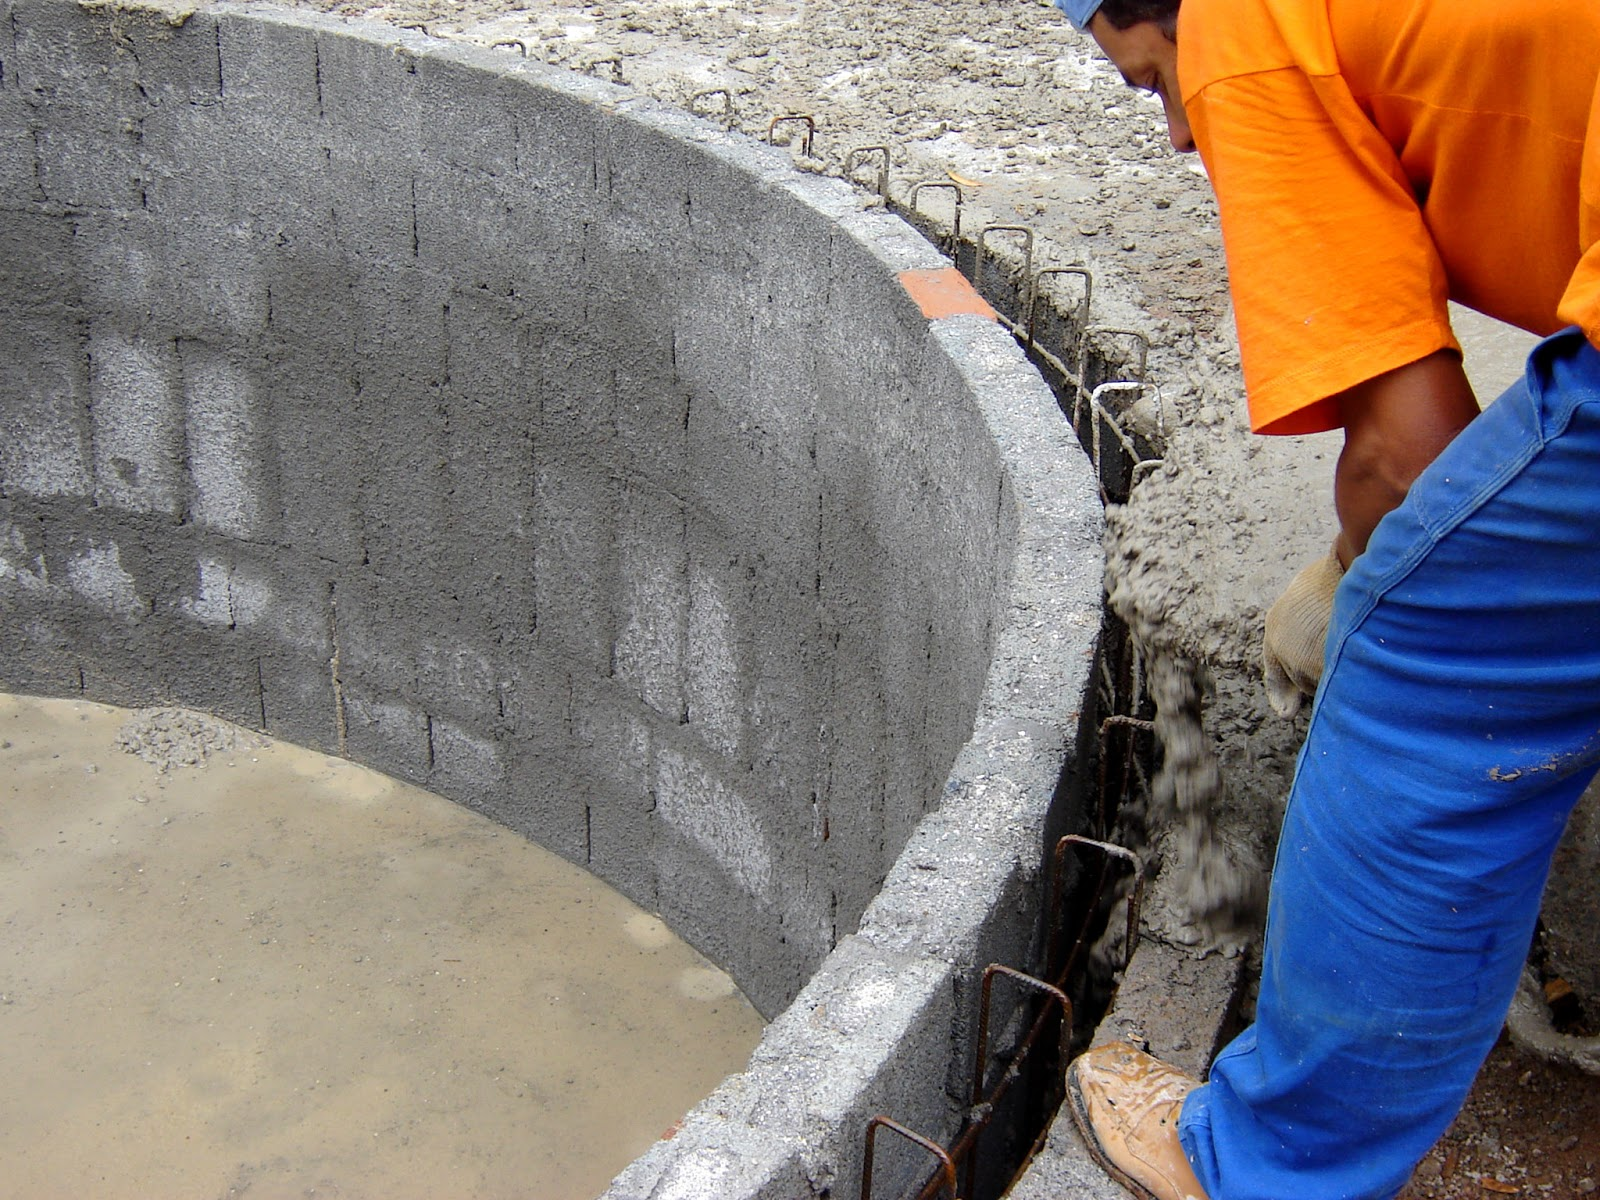 Obras em concreto armado for Construir piscina concreto